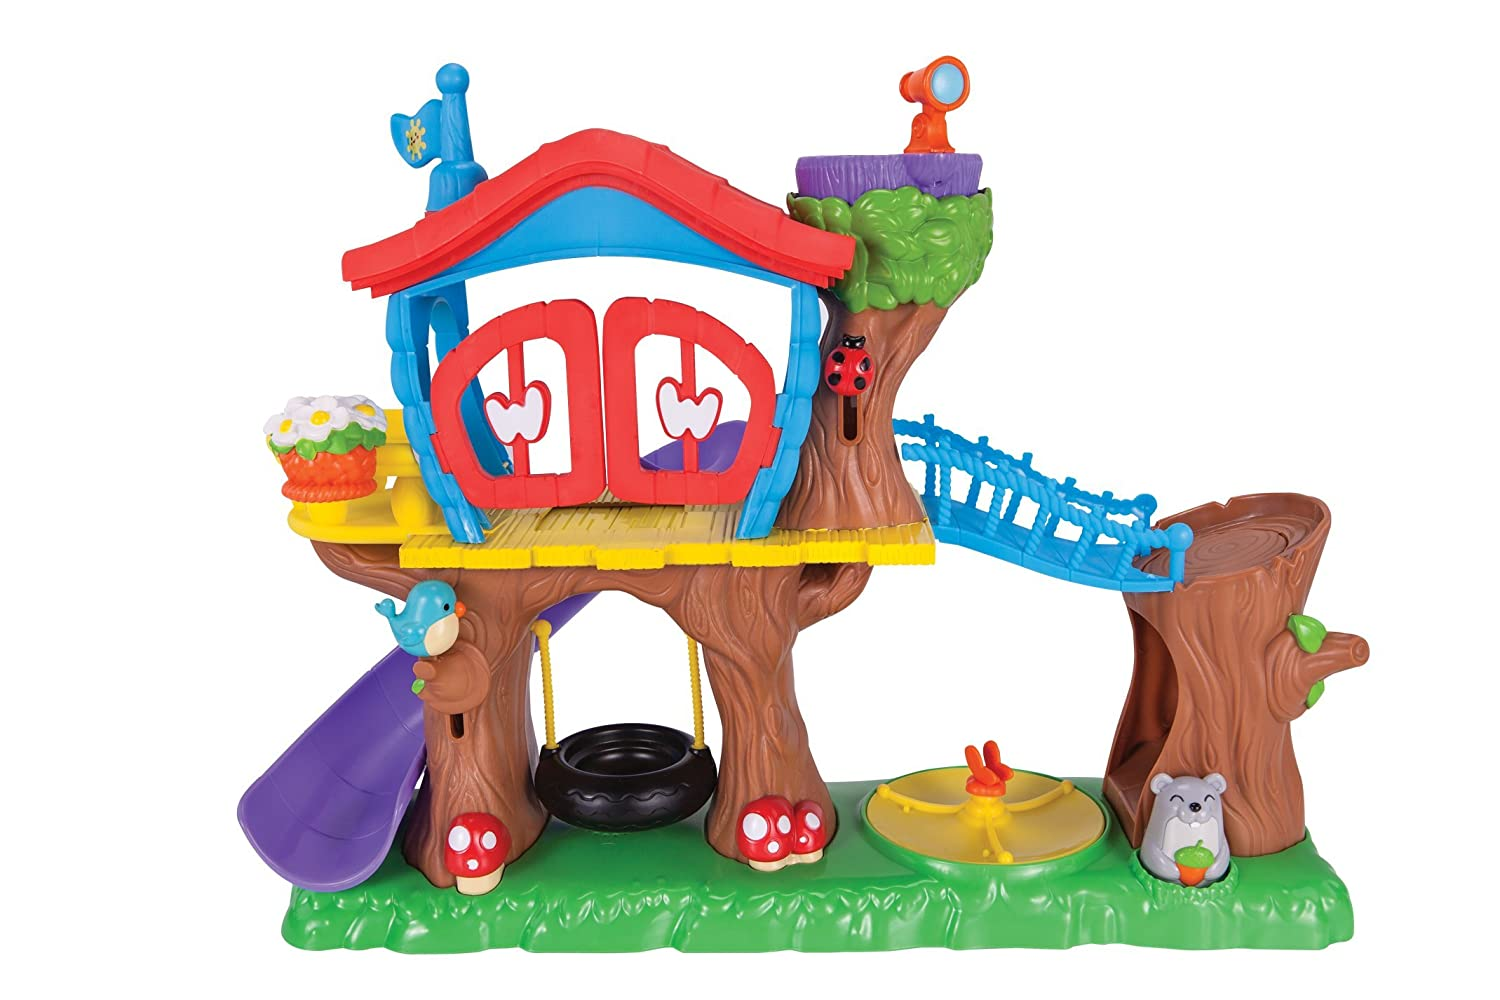 Playskool Weebles Musical Treehouse Part - 49: Amazon.com